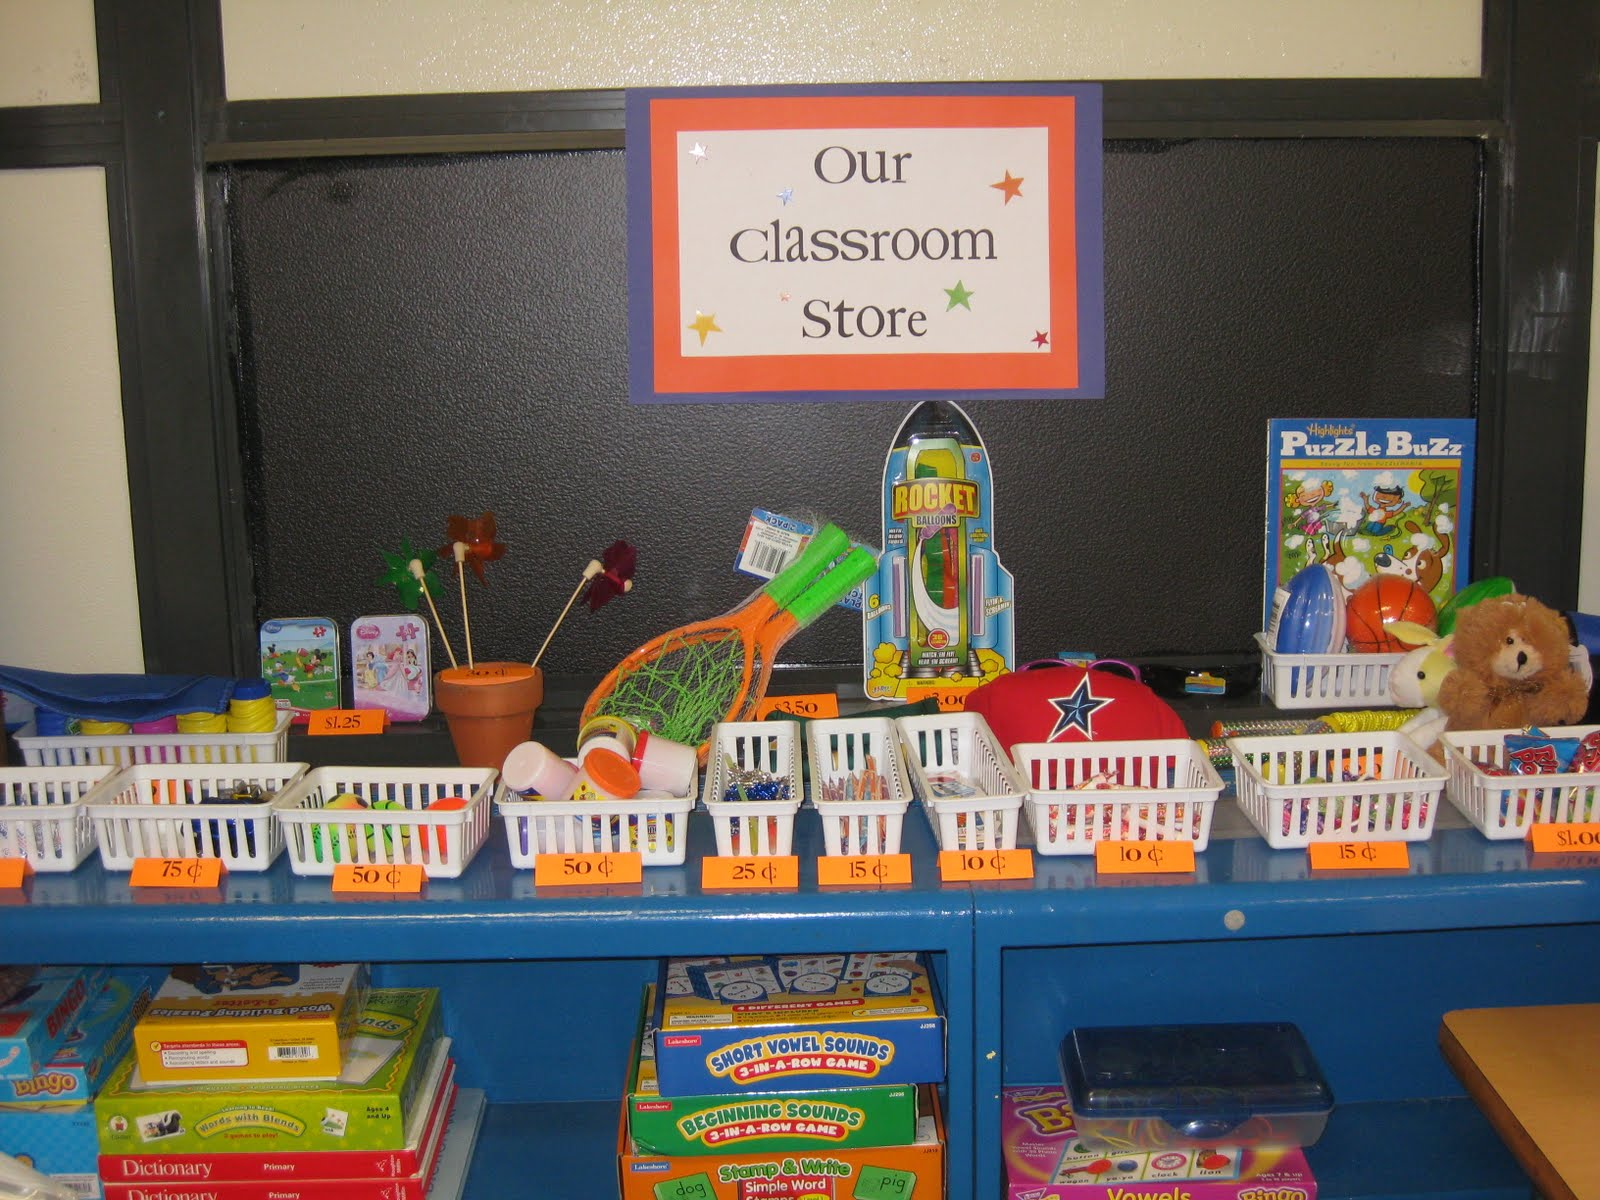 Classroom Decorations Store ~ Pencils and crayons books oh my classroom store